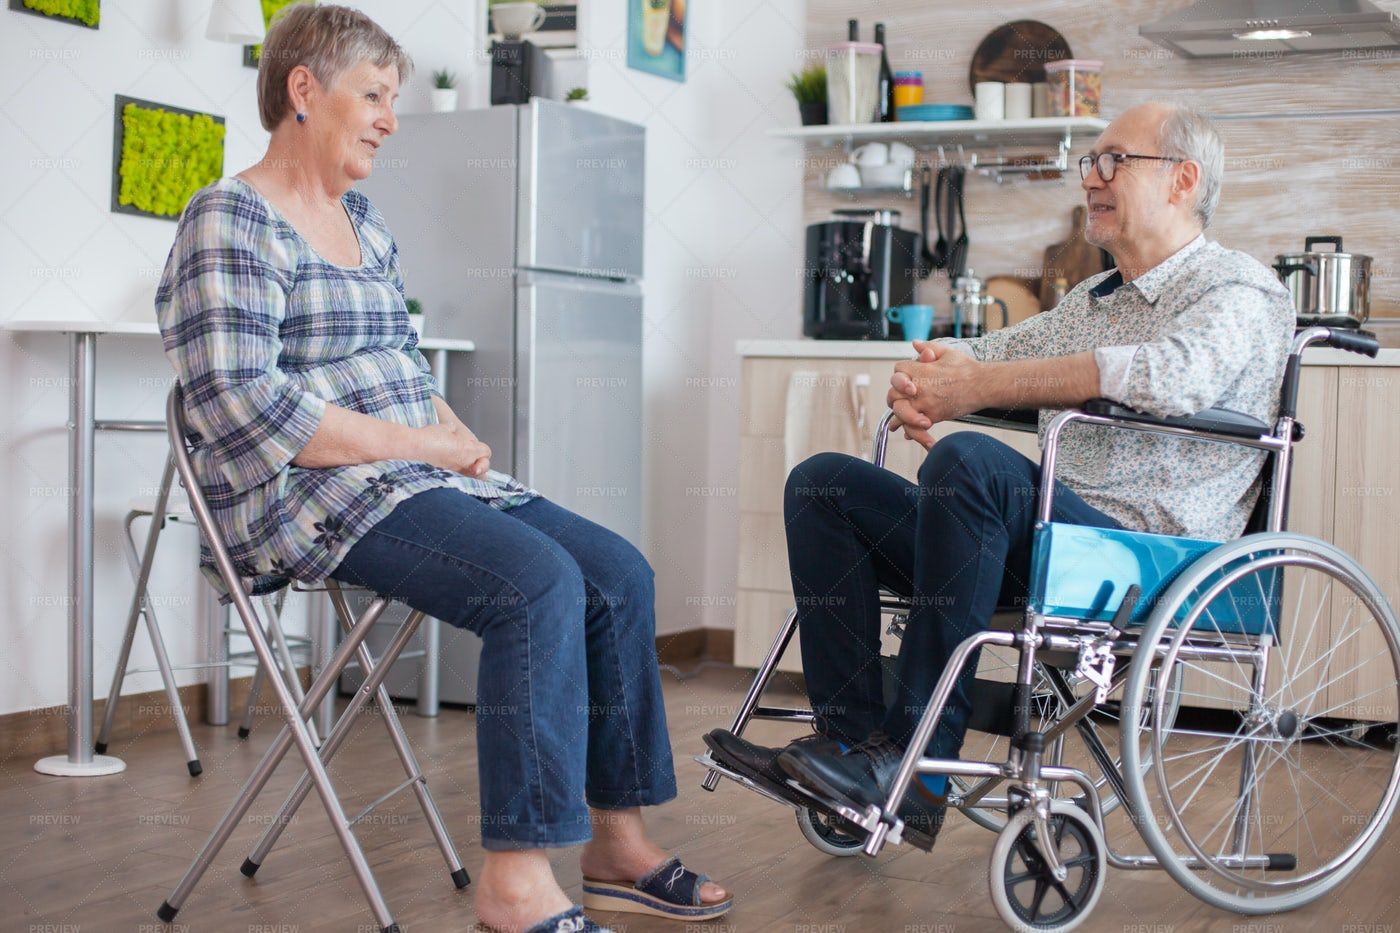 Retired Couple Talking In The Kitchen: Stock Photos